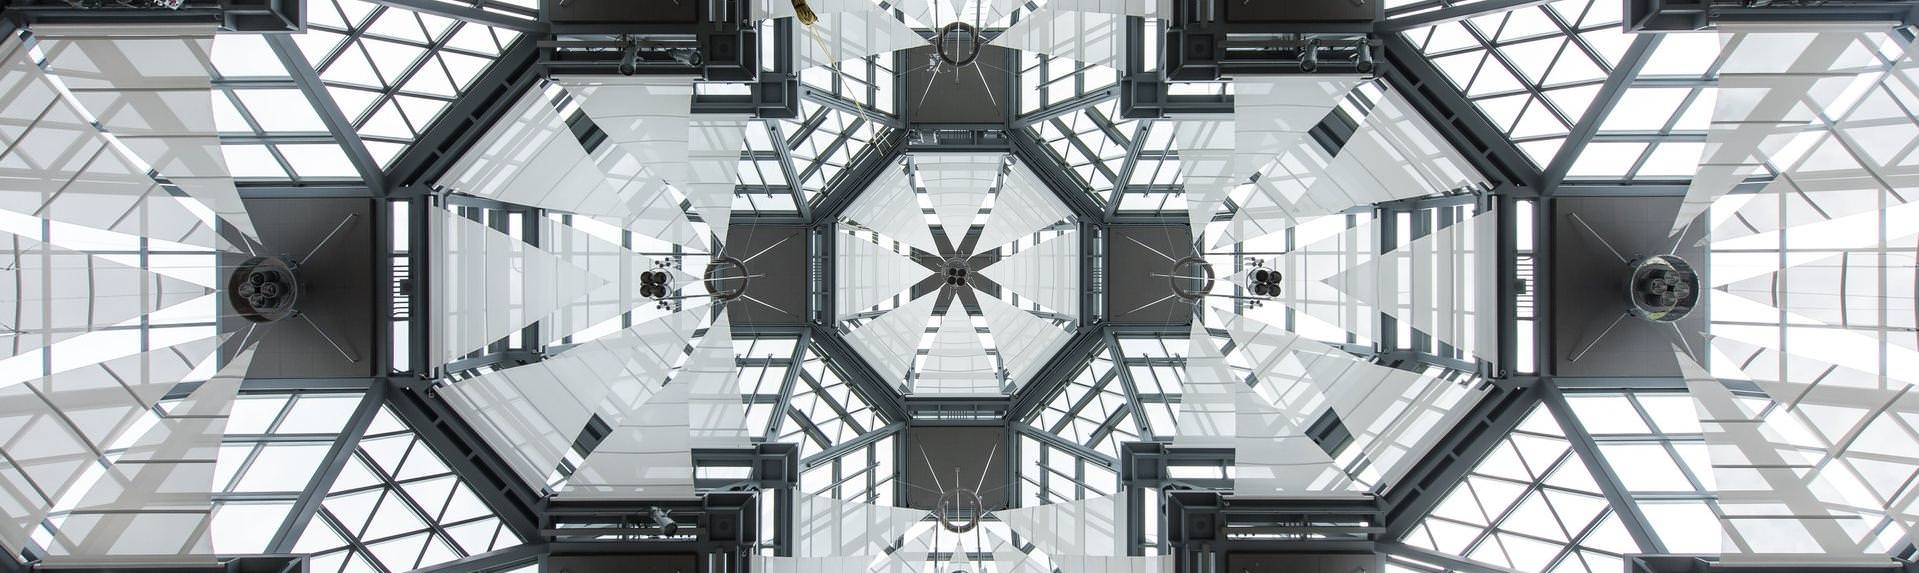 Ground level view of glass ceiling in a series of geometric shapes